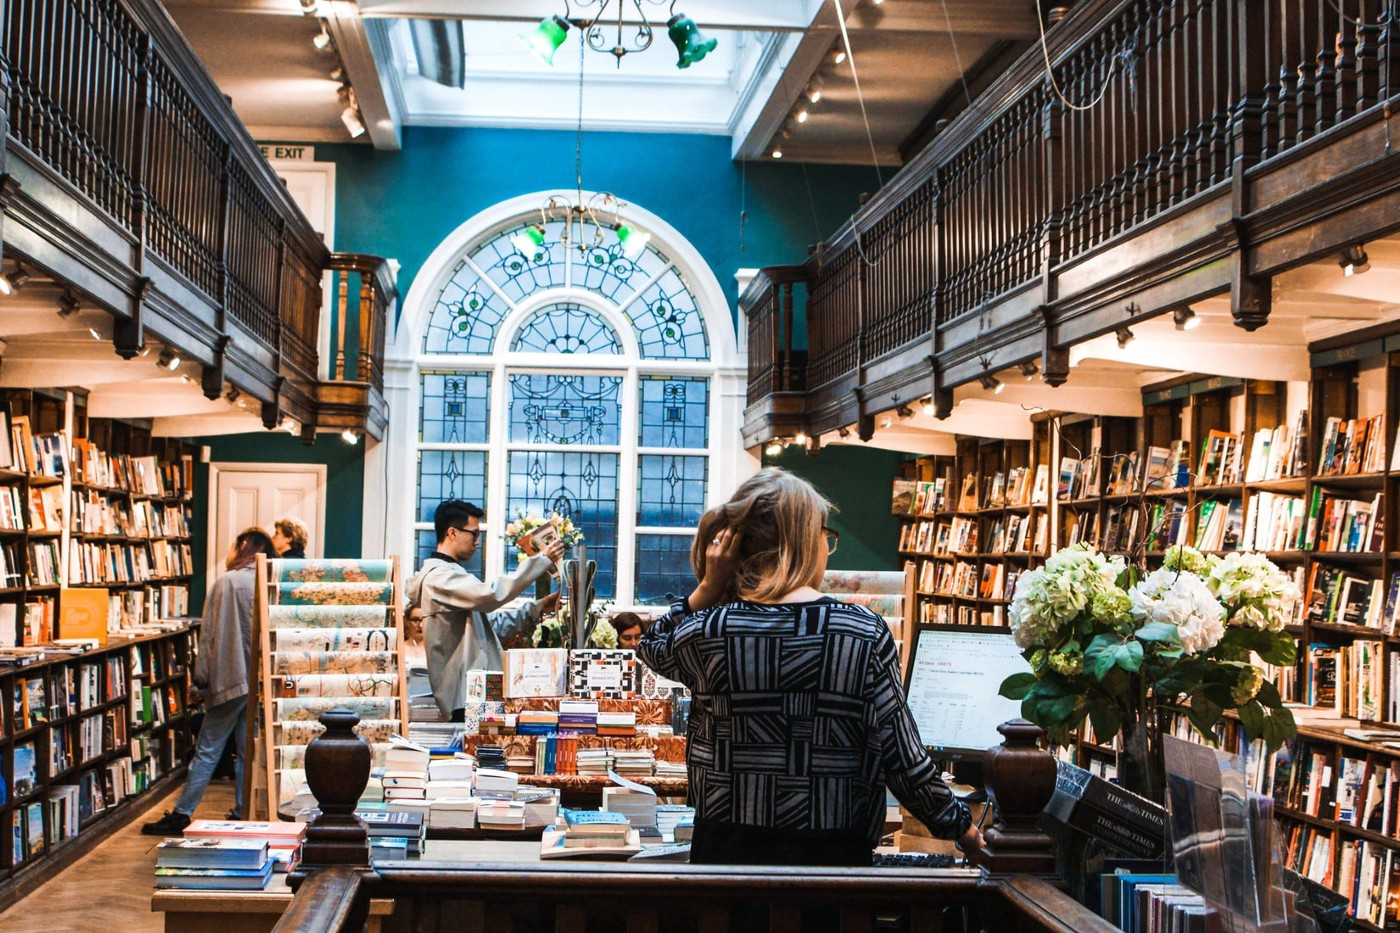 Inside a bookstore with balconies and a large stained glass window. Customers look around.